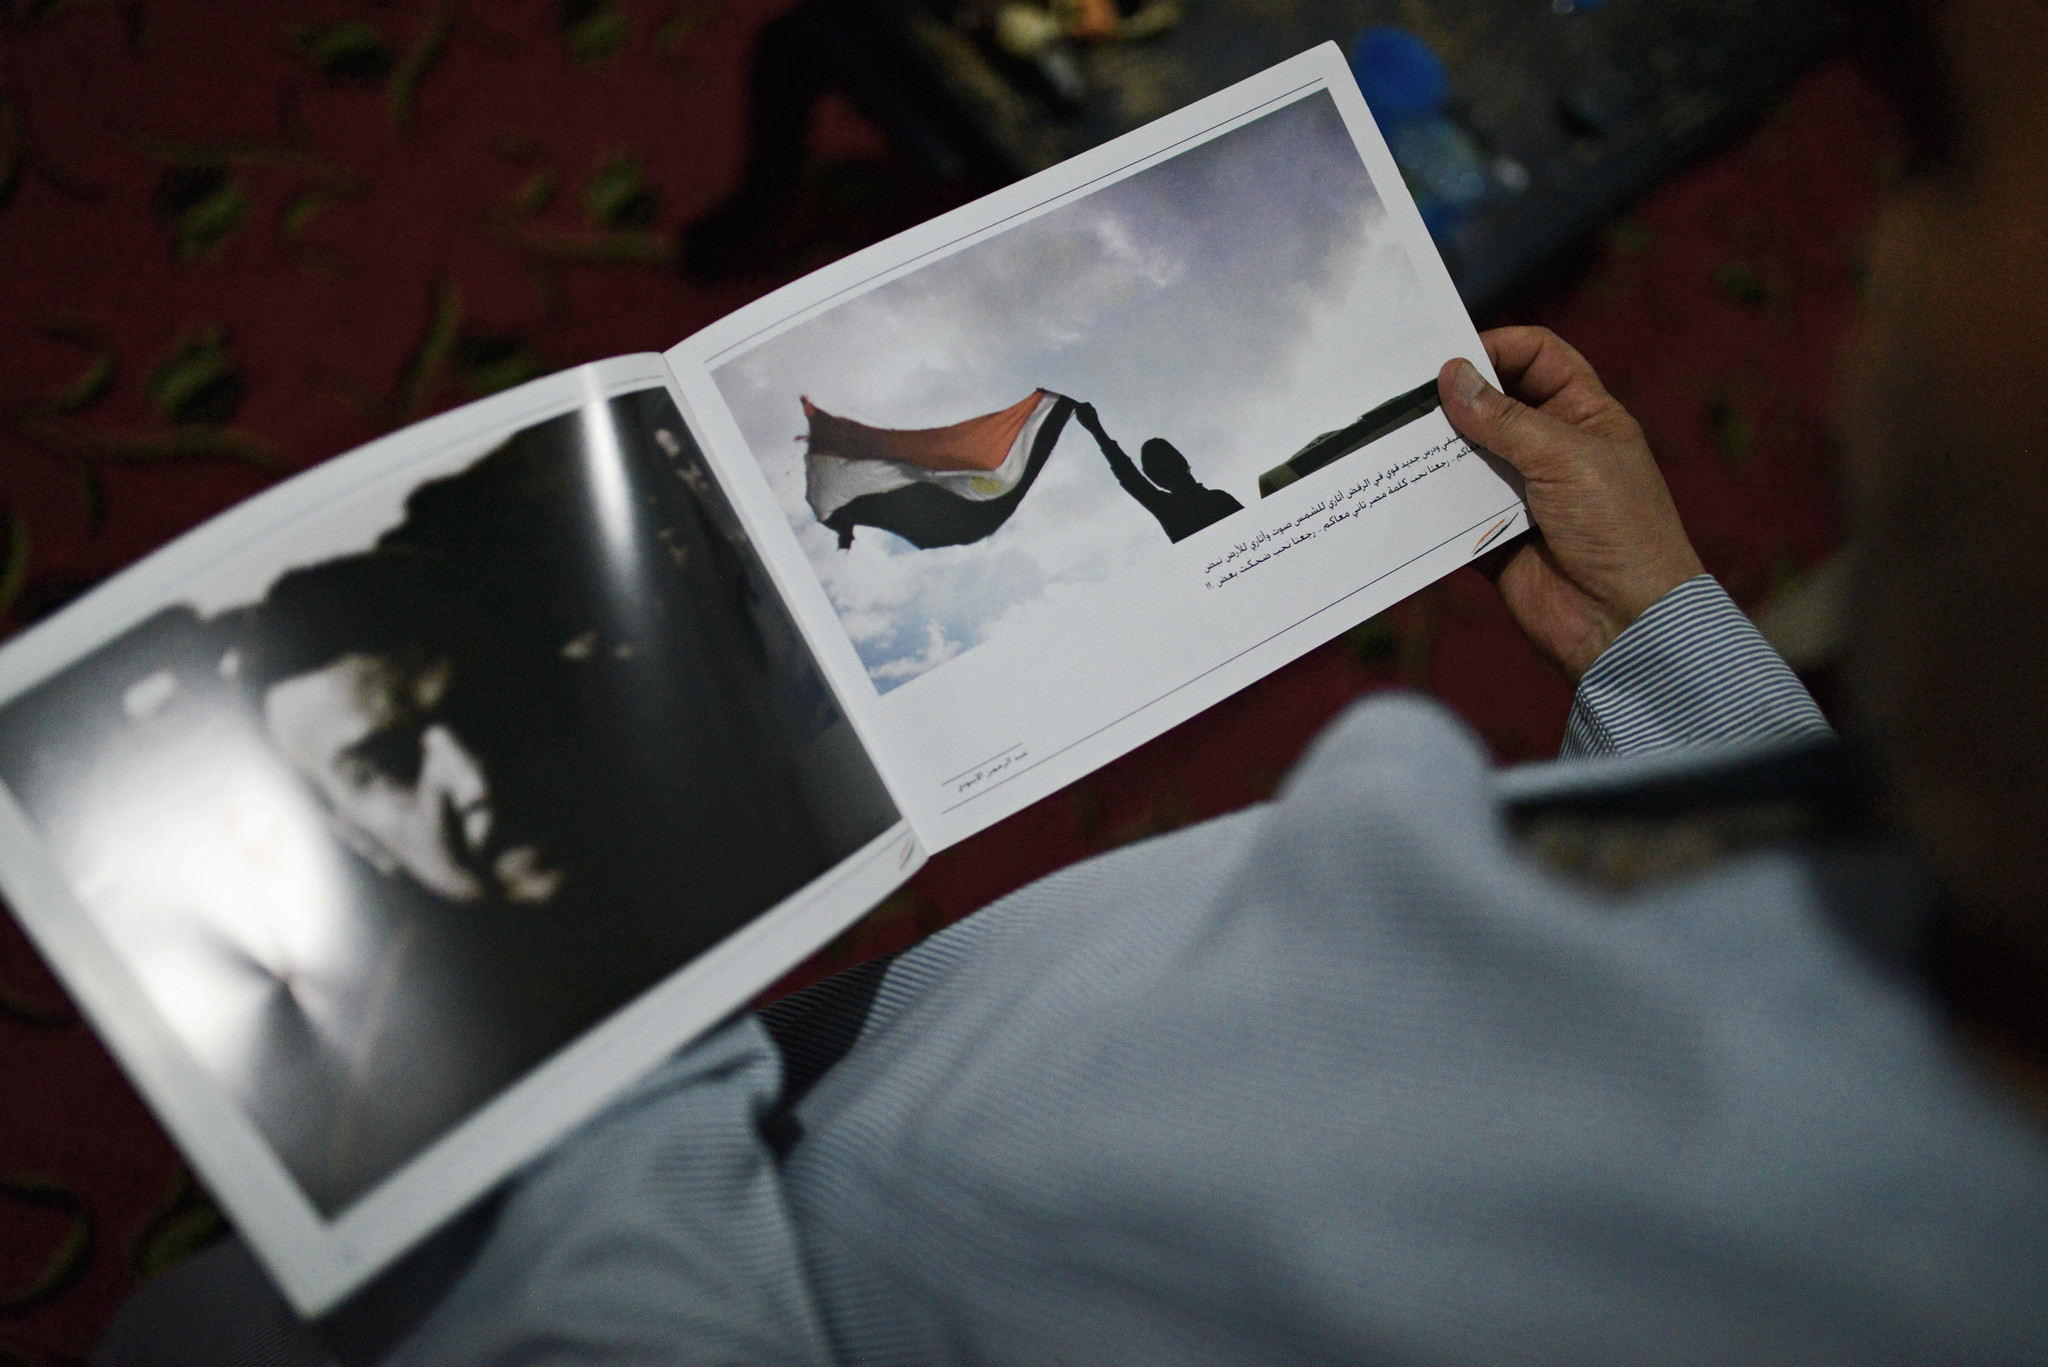 Shakwan's father holds a photo-book that contains his son's documentation of the 2011 Egyptian revol